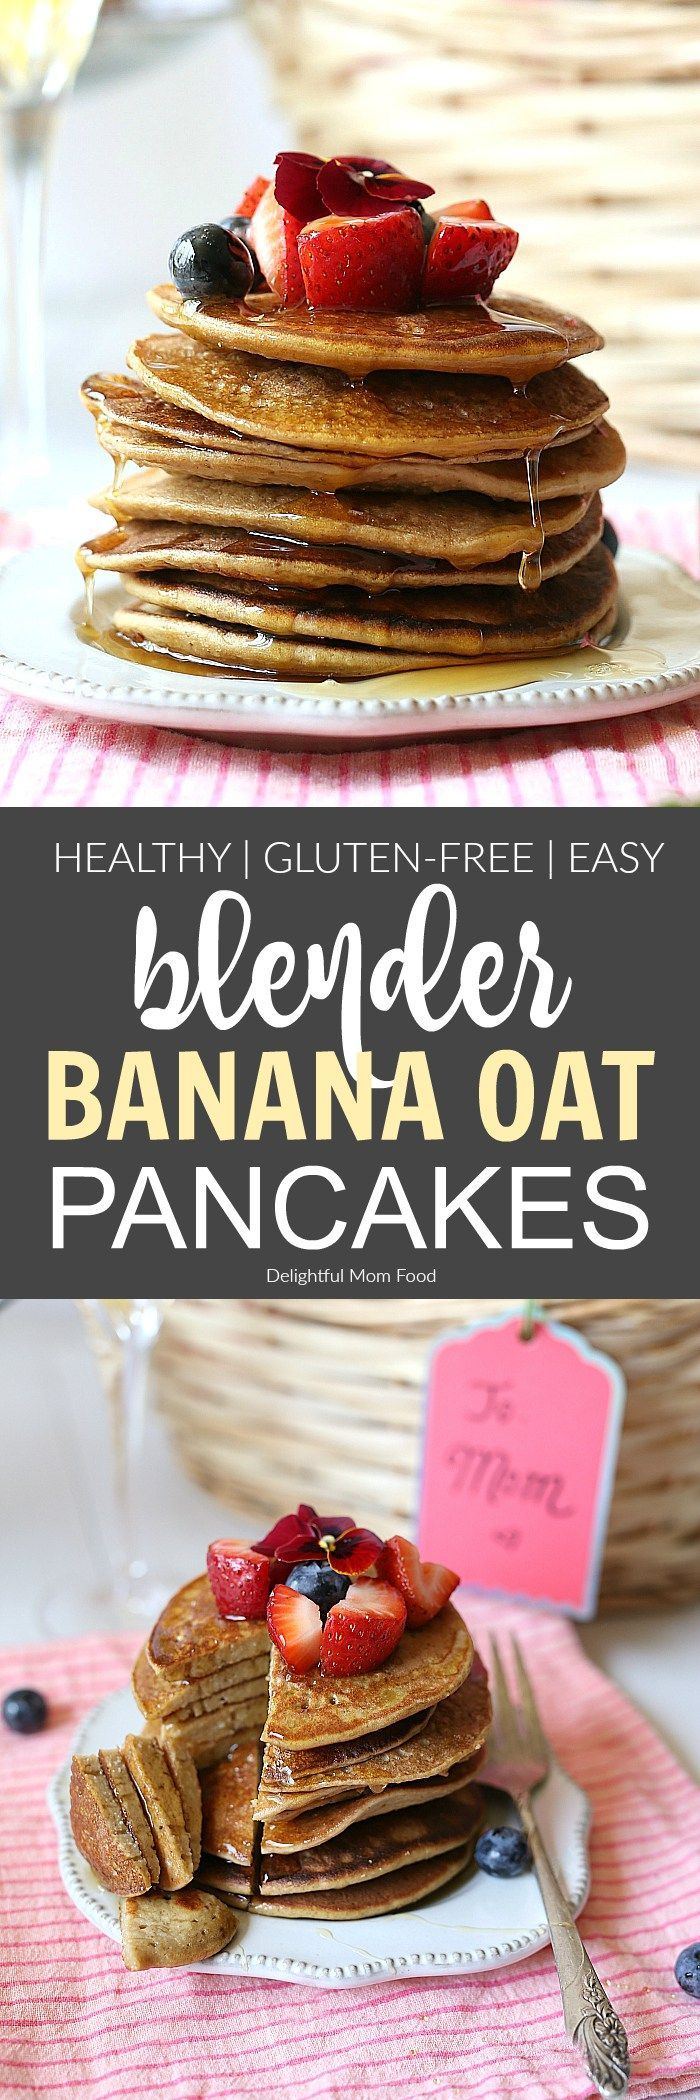 Banana Oat Blender Pancakes Warm and delicious banana oat pancakes smothered in thick maple syrup and made in a blender. A quick and healthy flourless pancake recipe with heart-healthy ingredients. | Recipe at